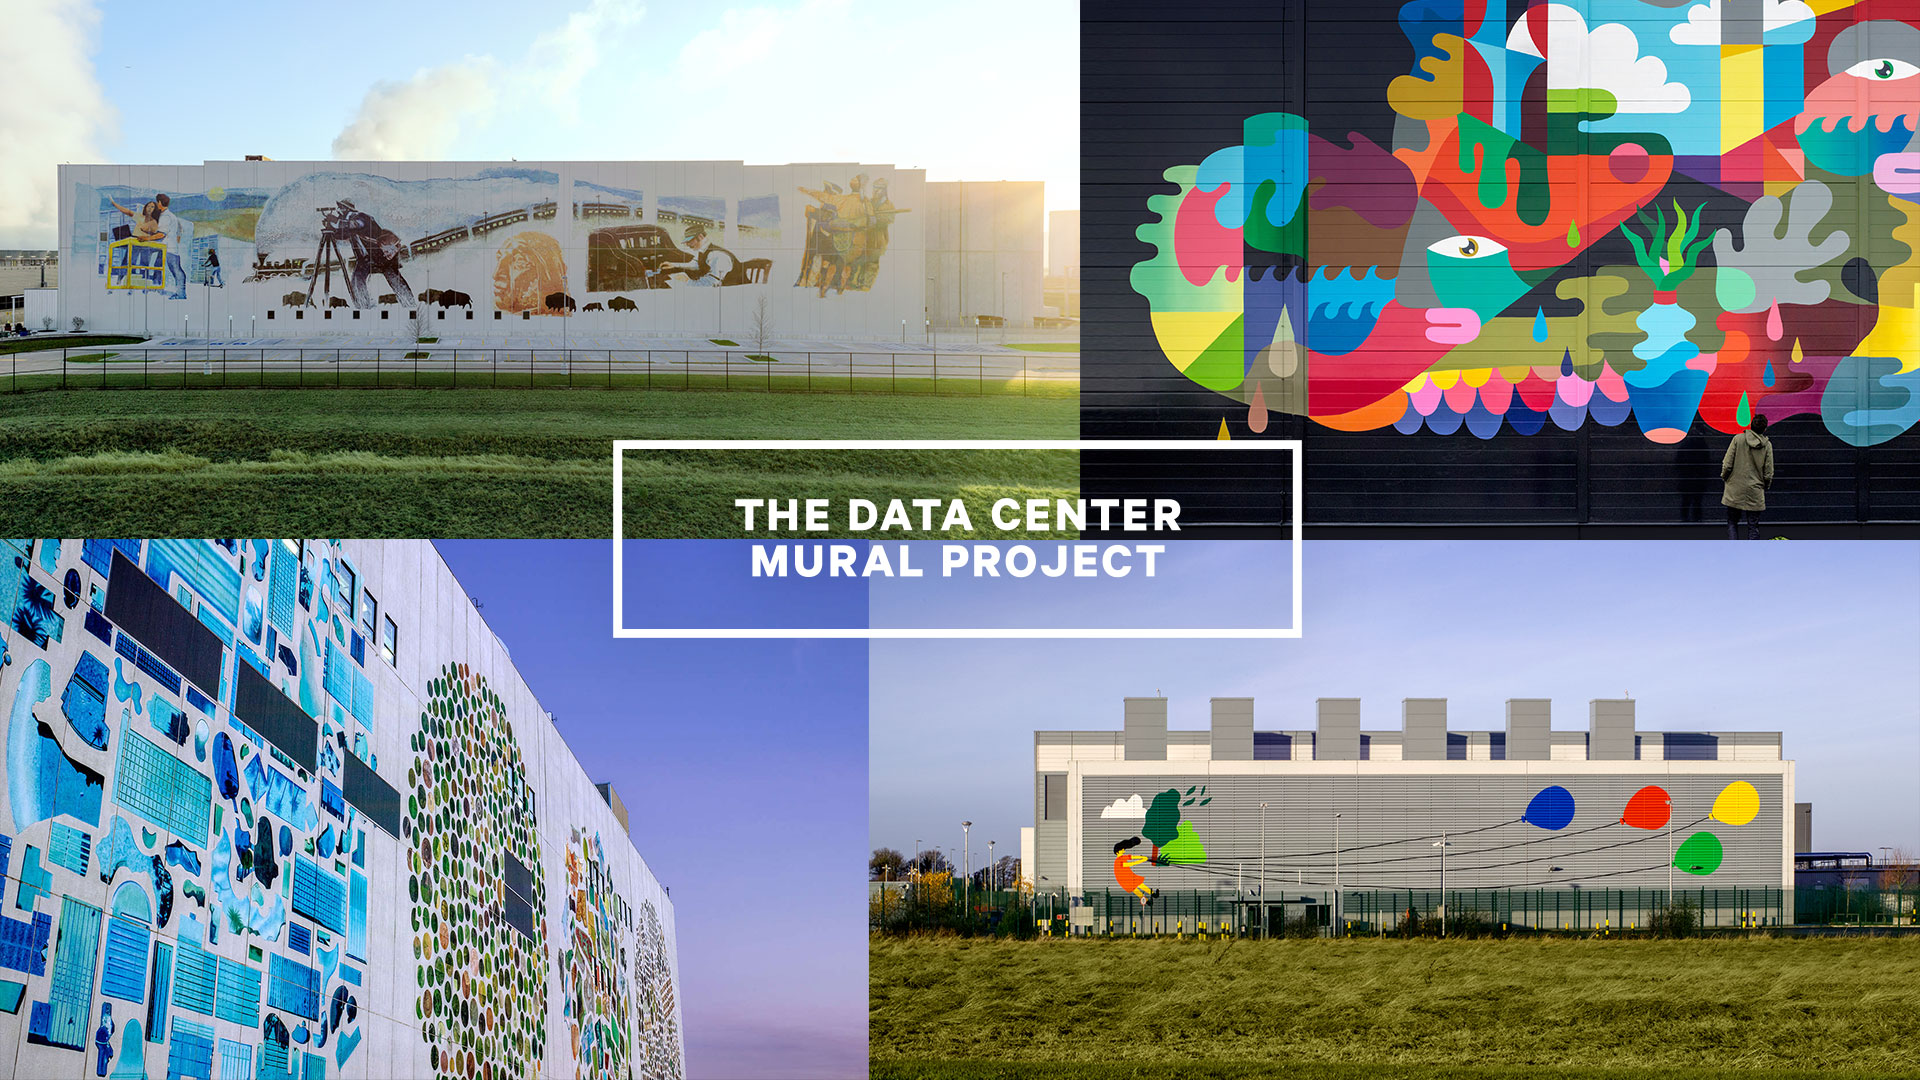 the data center mural project